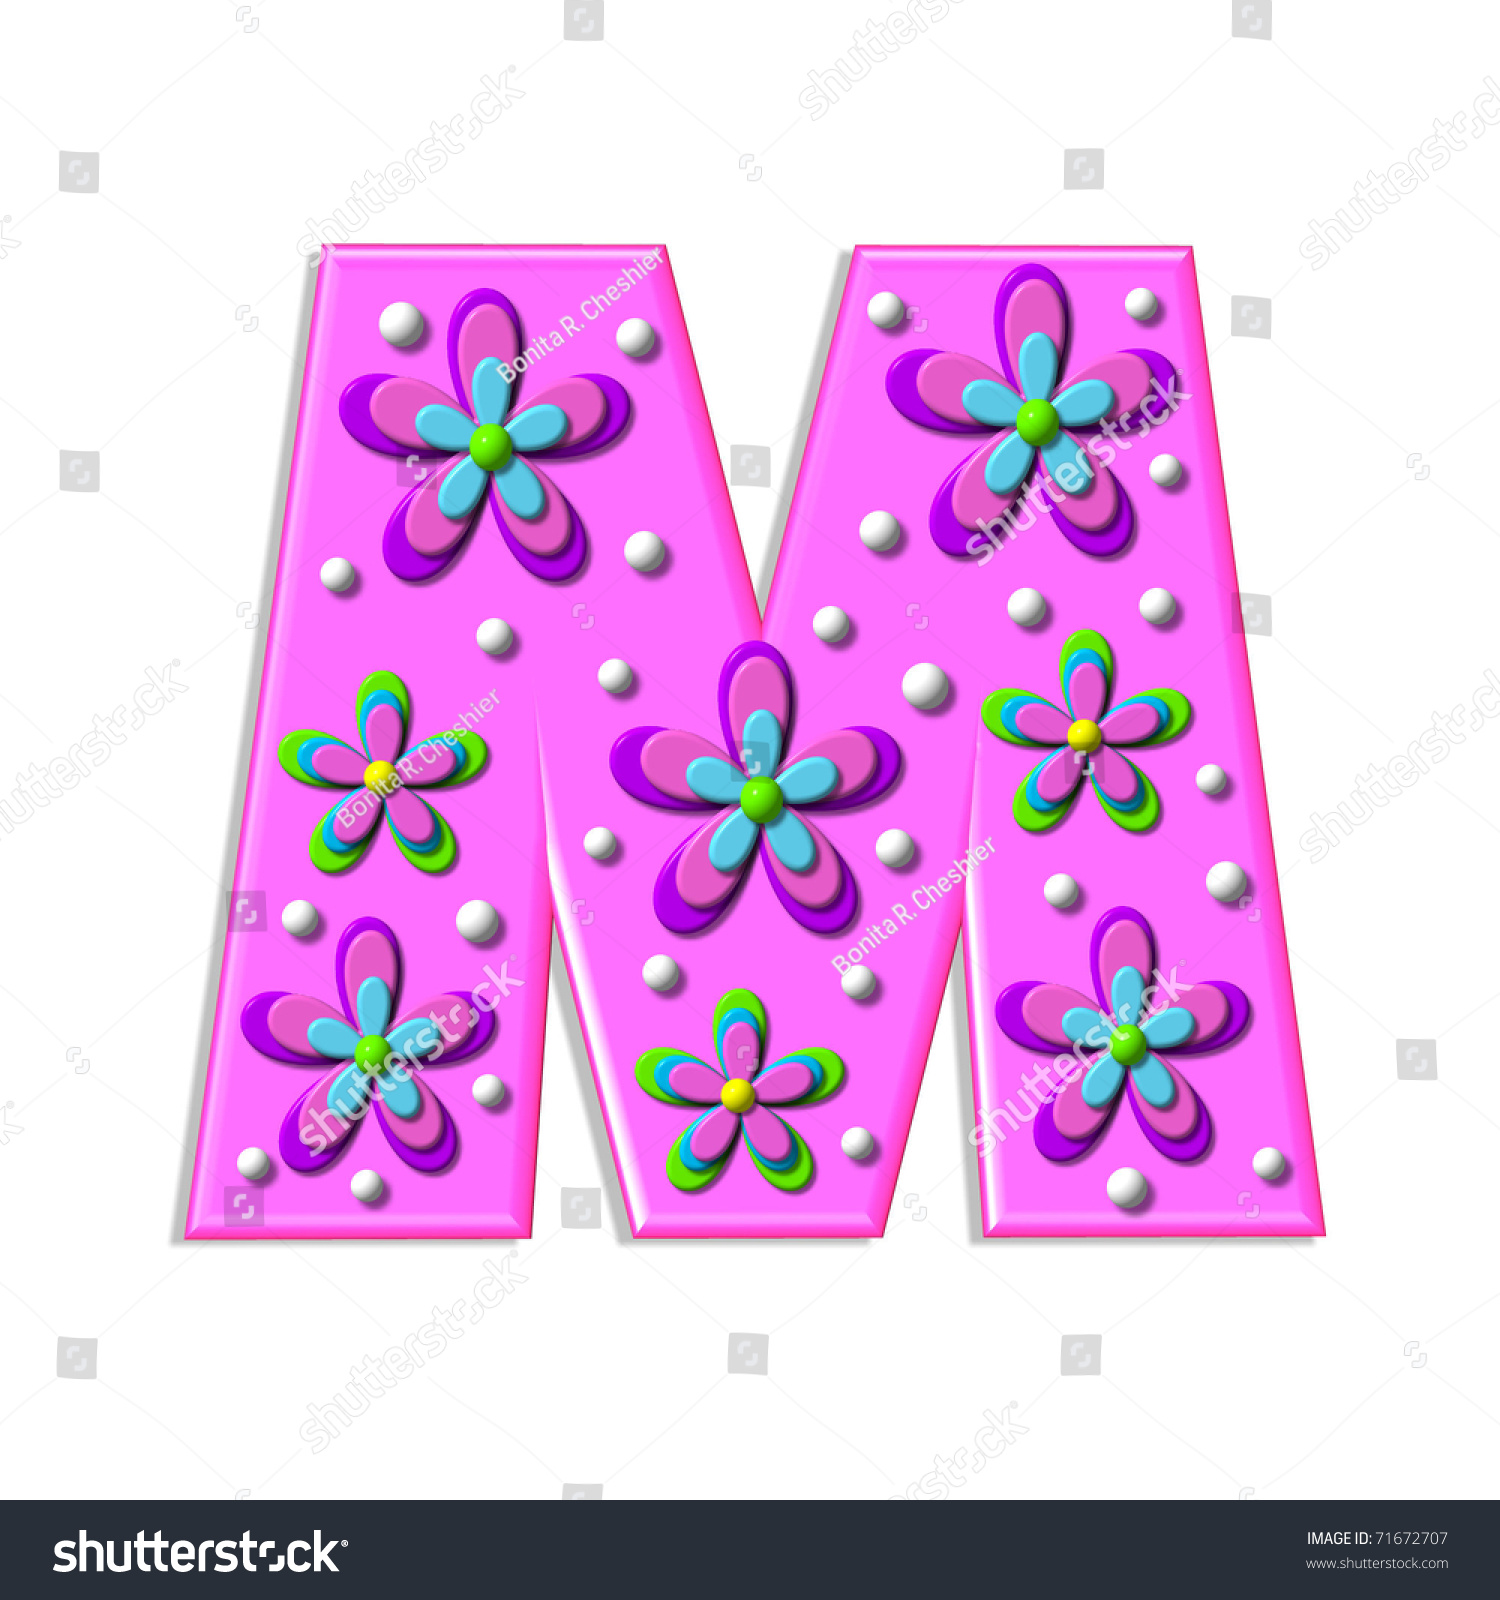 Funky Hot Pink Letter M Part Stock Illustration - Royalty Free Stock ...